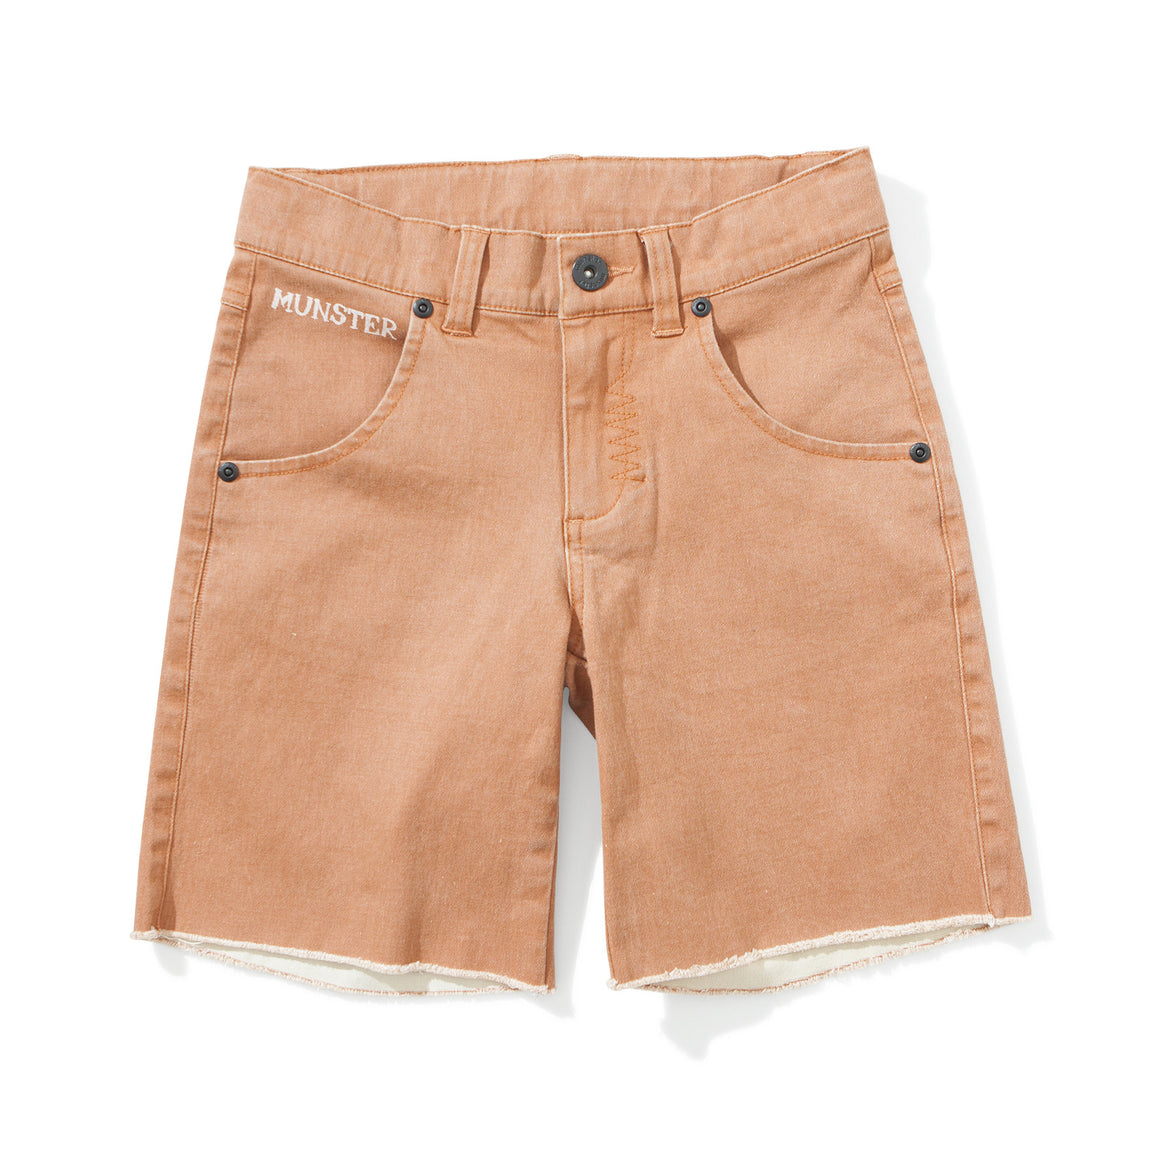 Munster Kids - Boys Orange RipOff Shorts | Pants & Shorts | Bon Bon Tresor